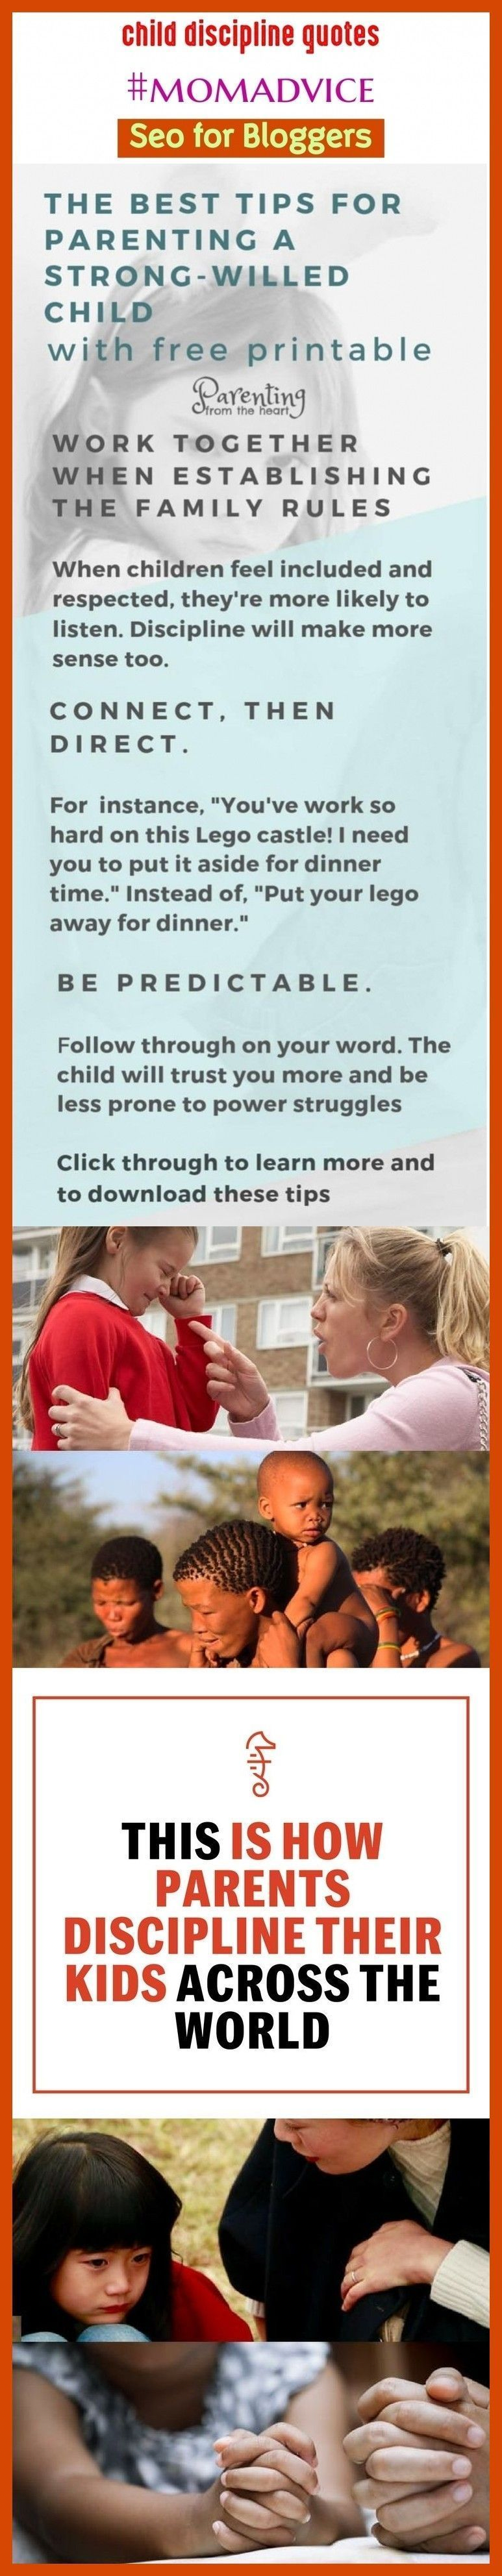 Photo of Advice for dads  #christian #child #discipline christian child discipline foste